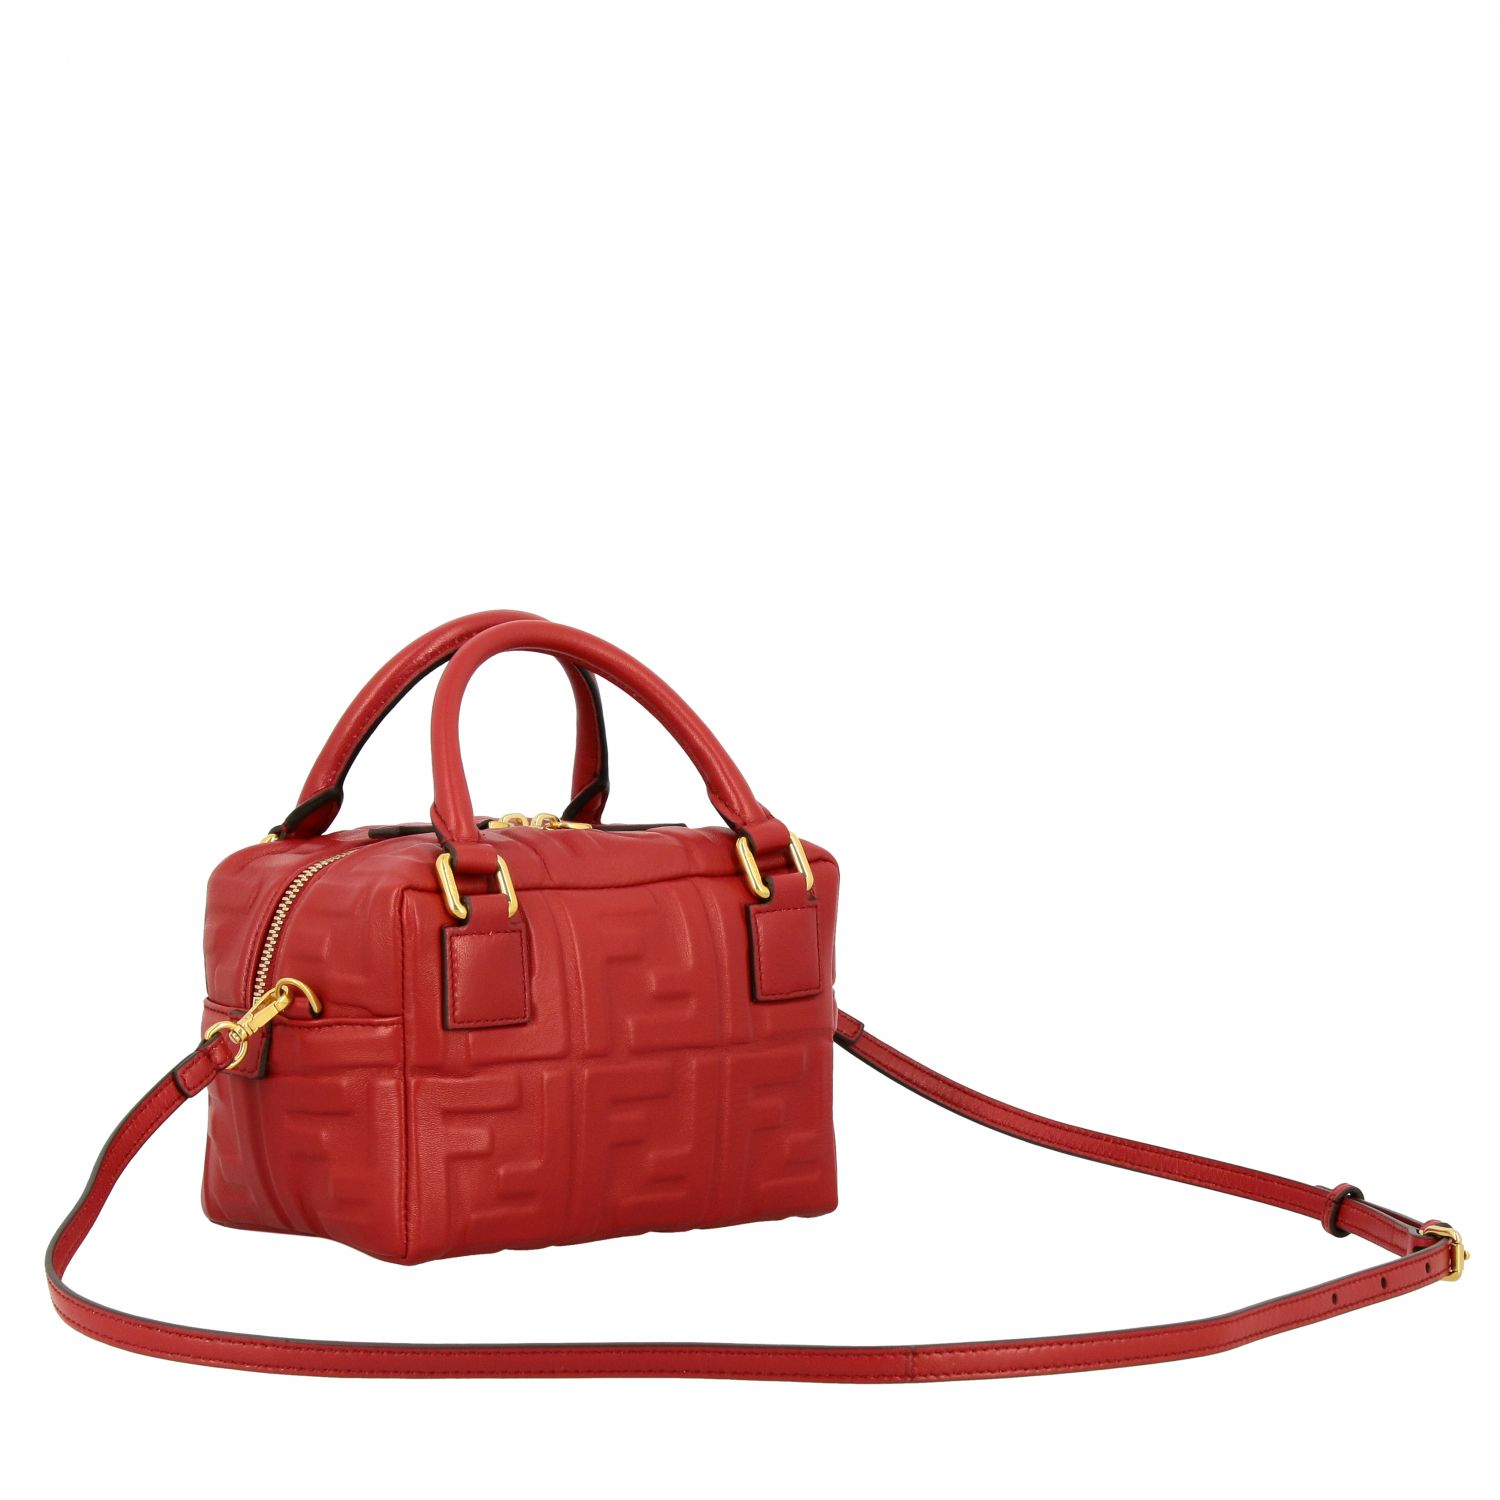 Mini bag women Fendi red 3